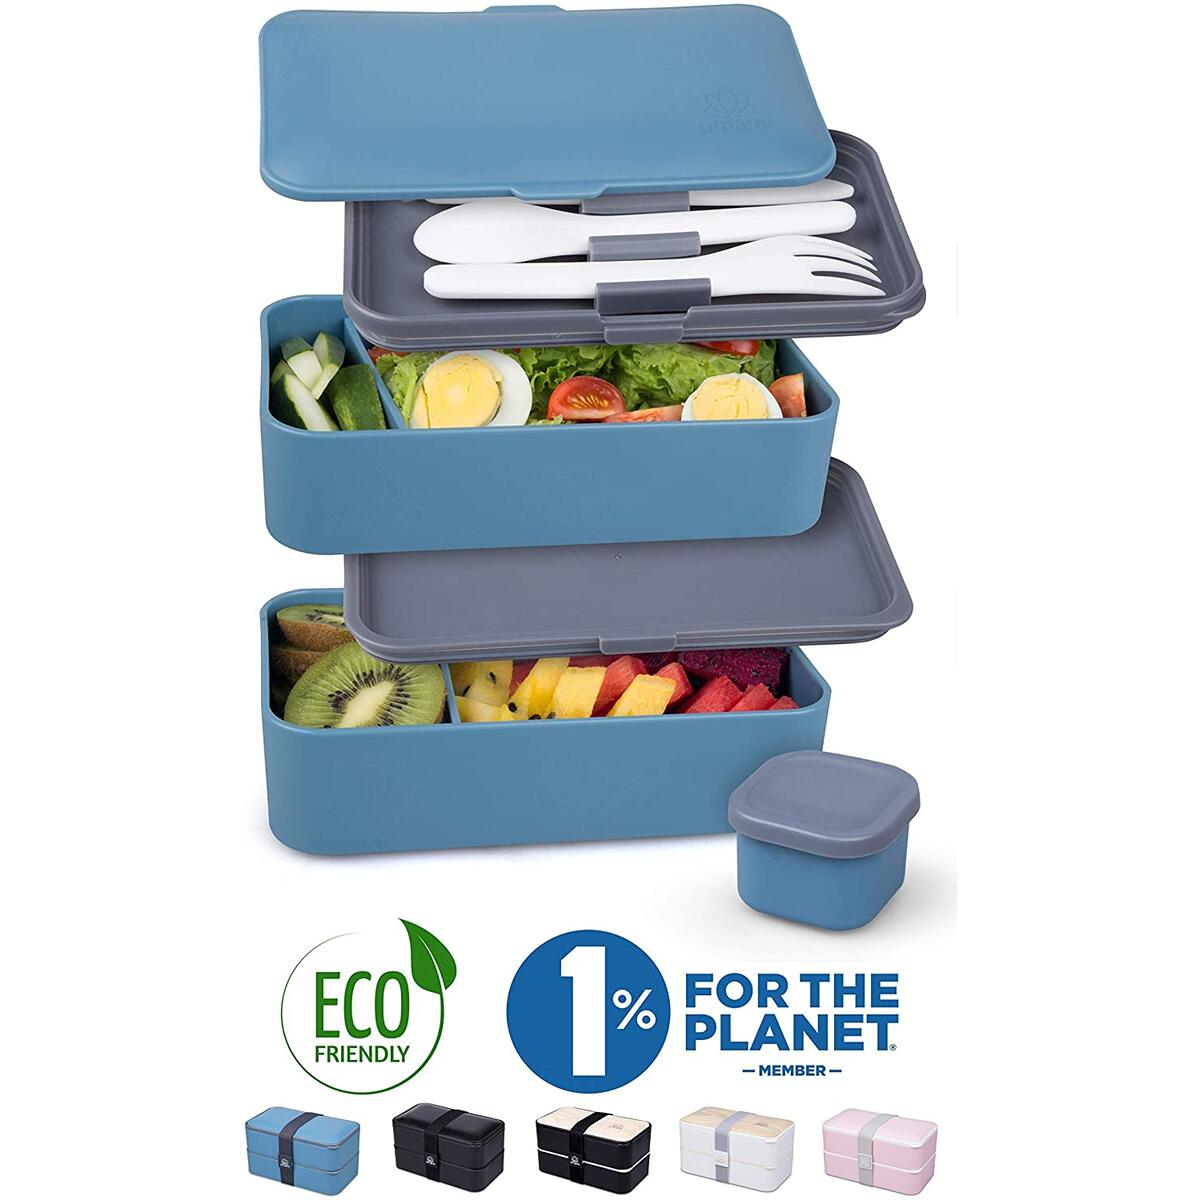 UMAMI Premium Bento Lunch Box For Adults/Children - Includes 1 Sauce Pot & Cutlery 3 Pieces - Japanese Hermetic Box - 2 Compartments - Micro-Waves & Dishwasher & Freezer - BPA Free - Zero Waste